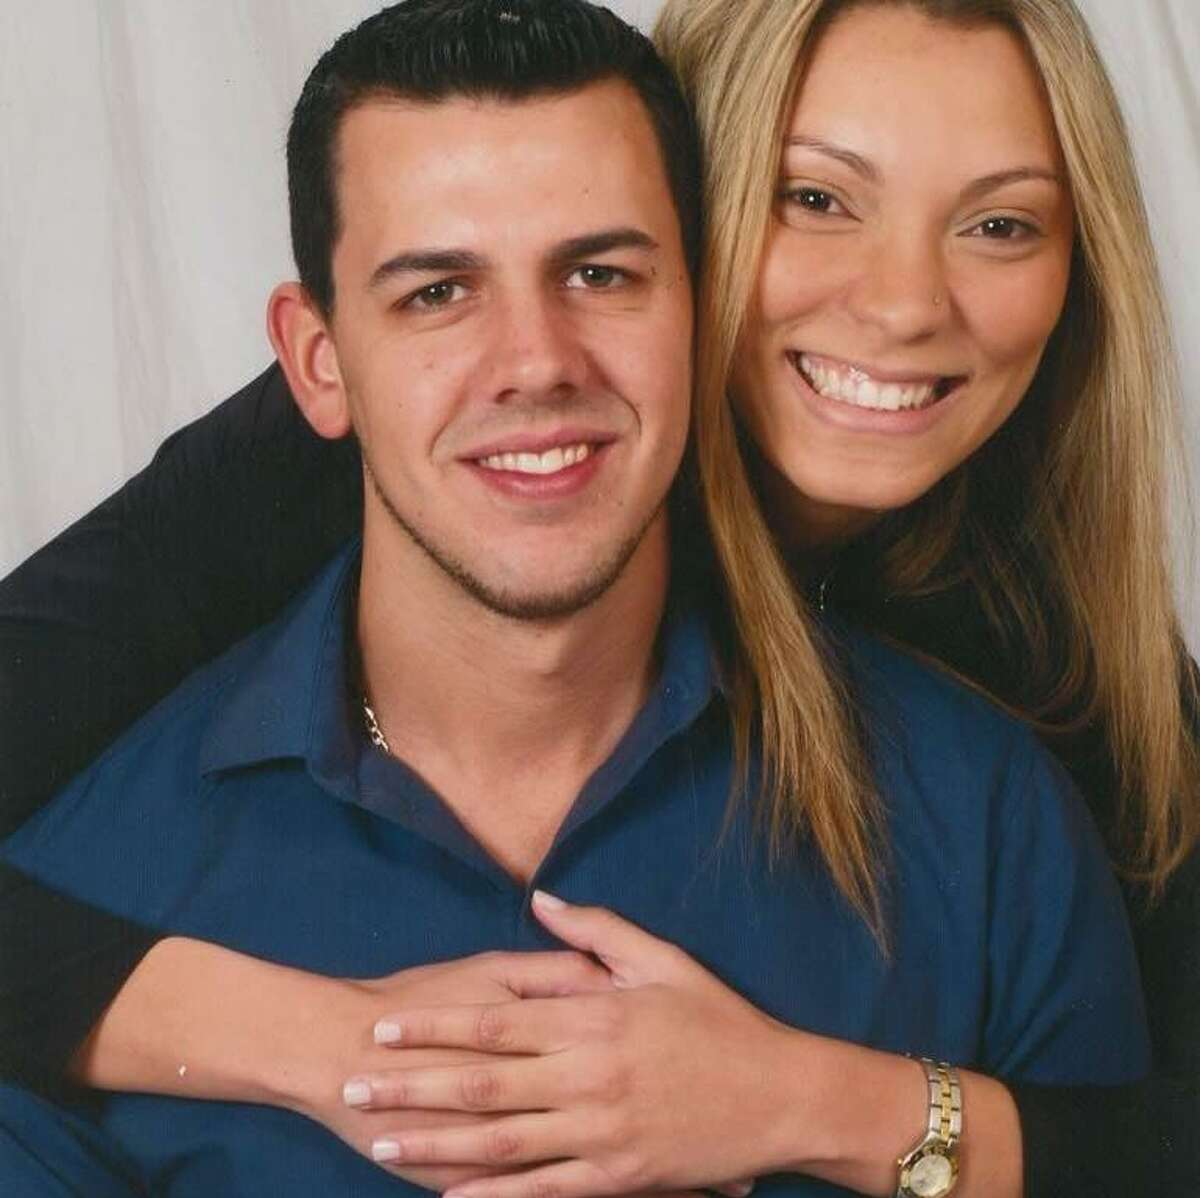 Redding resident Peter Valenti died of an apparent suicide in April 2016. Redding police were sued by his estate. The lawsuit accuses police of negligence in their handling of the case. Valenti is pictured here with his wife Paula, who died unexpectedly a month before his death.